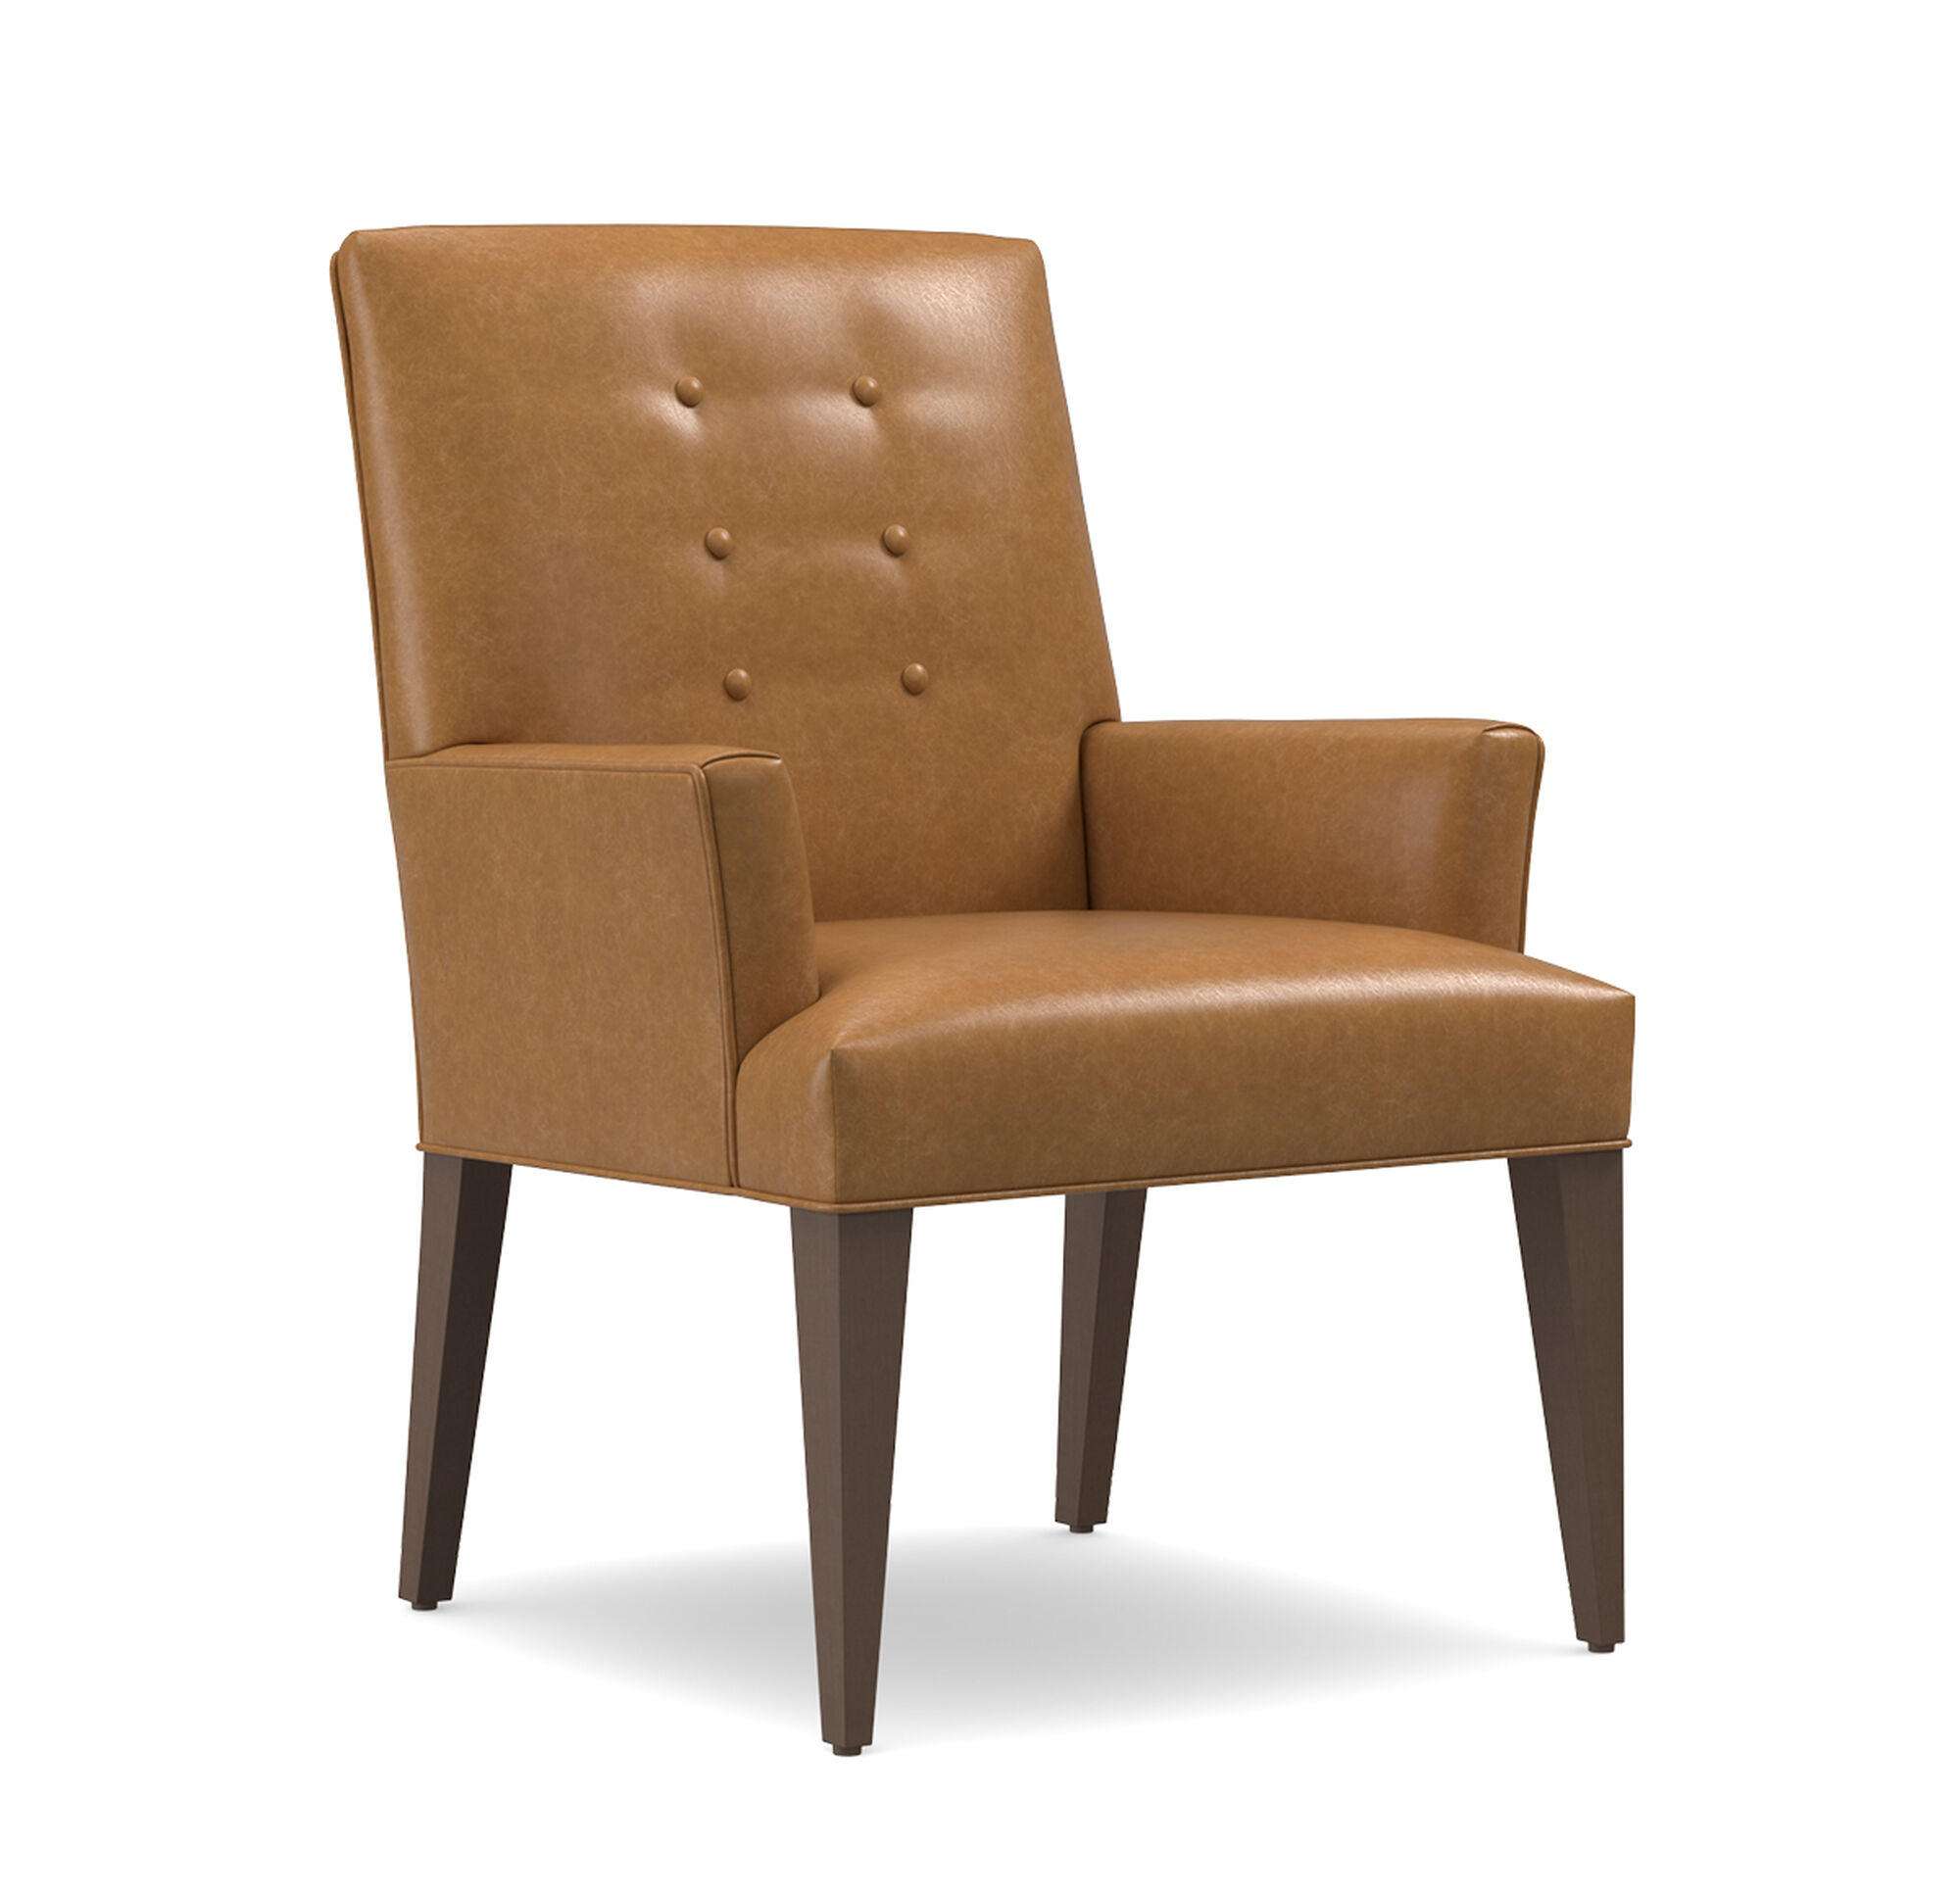 Stupendous Oliver Leather Arm Dining Chair Pdpeps Interior Chair Design Pdpepsorg